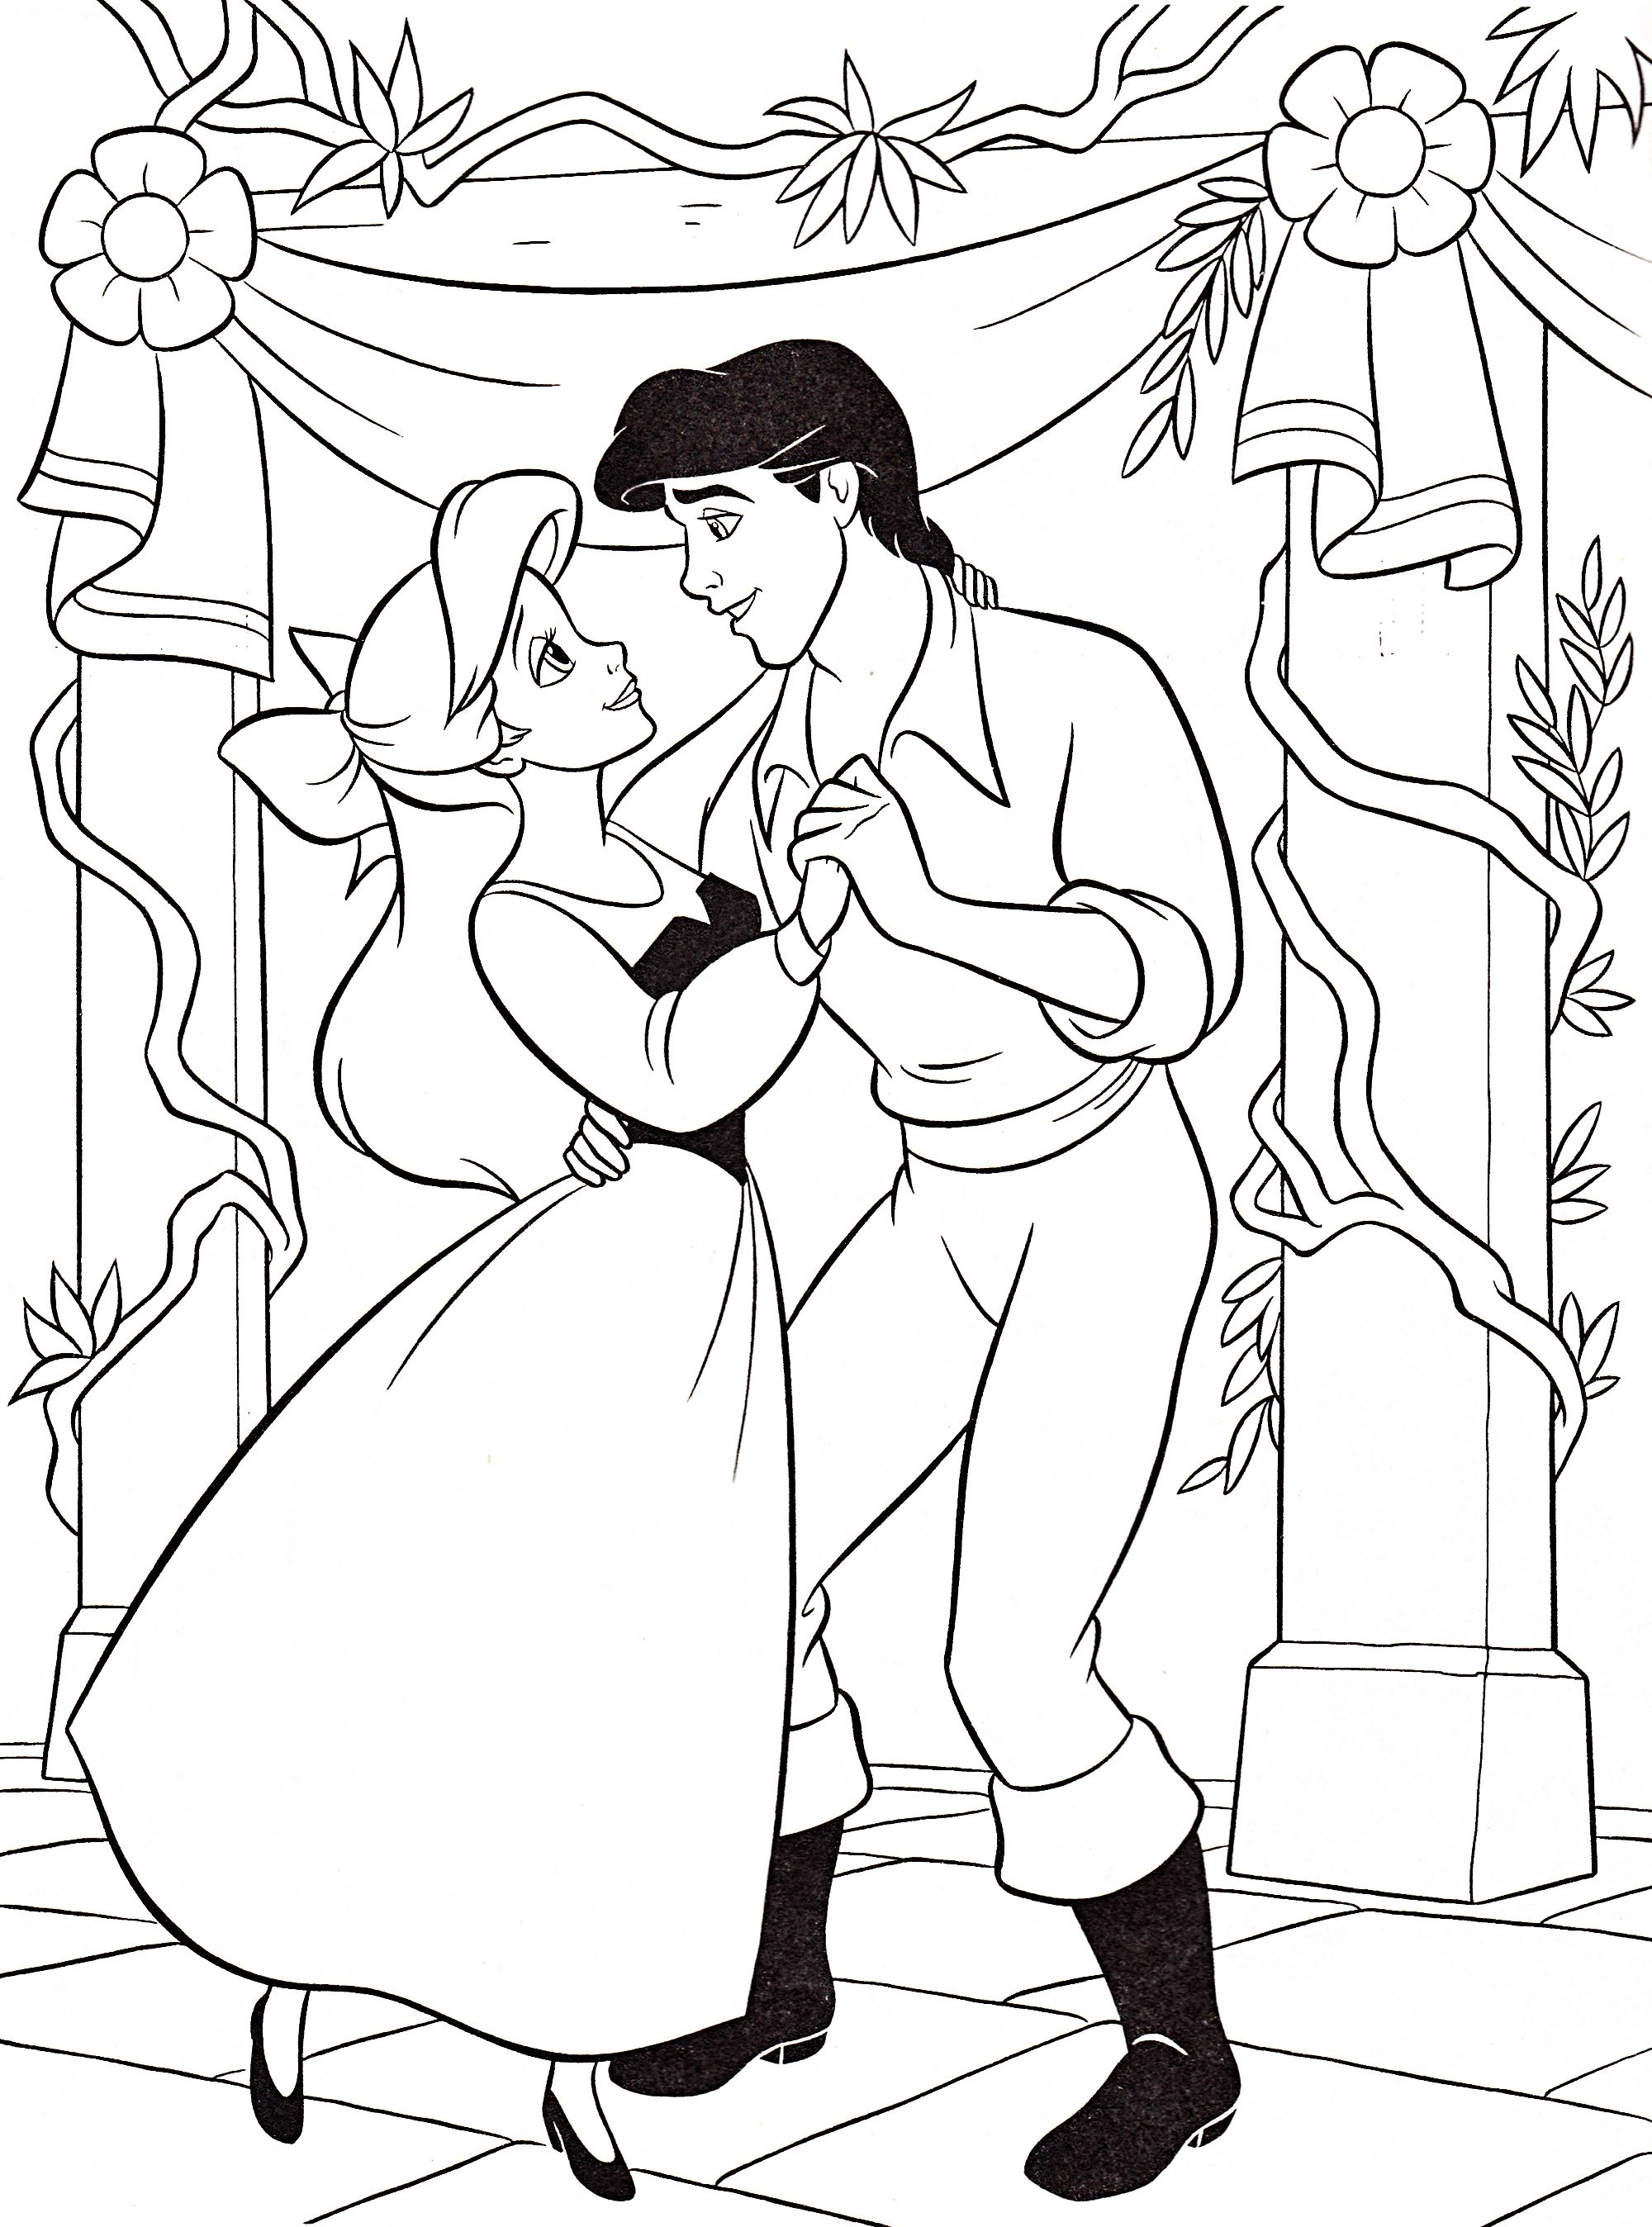 Coloring pictures disney characters - Disney Tangled Coloring Pages Printable Walt Disney Characters Walt Disney Coloring Pages Princess Ariel